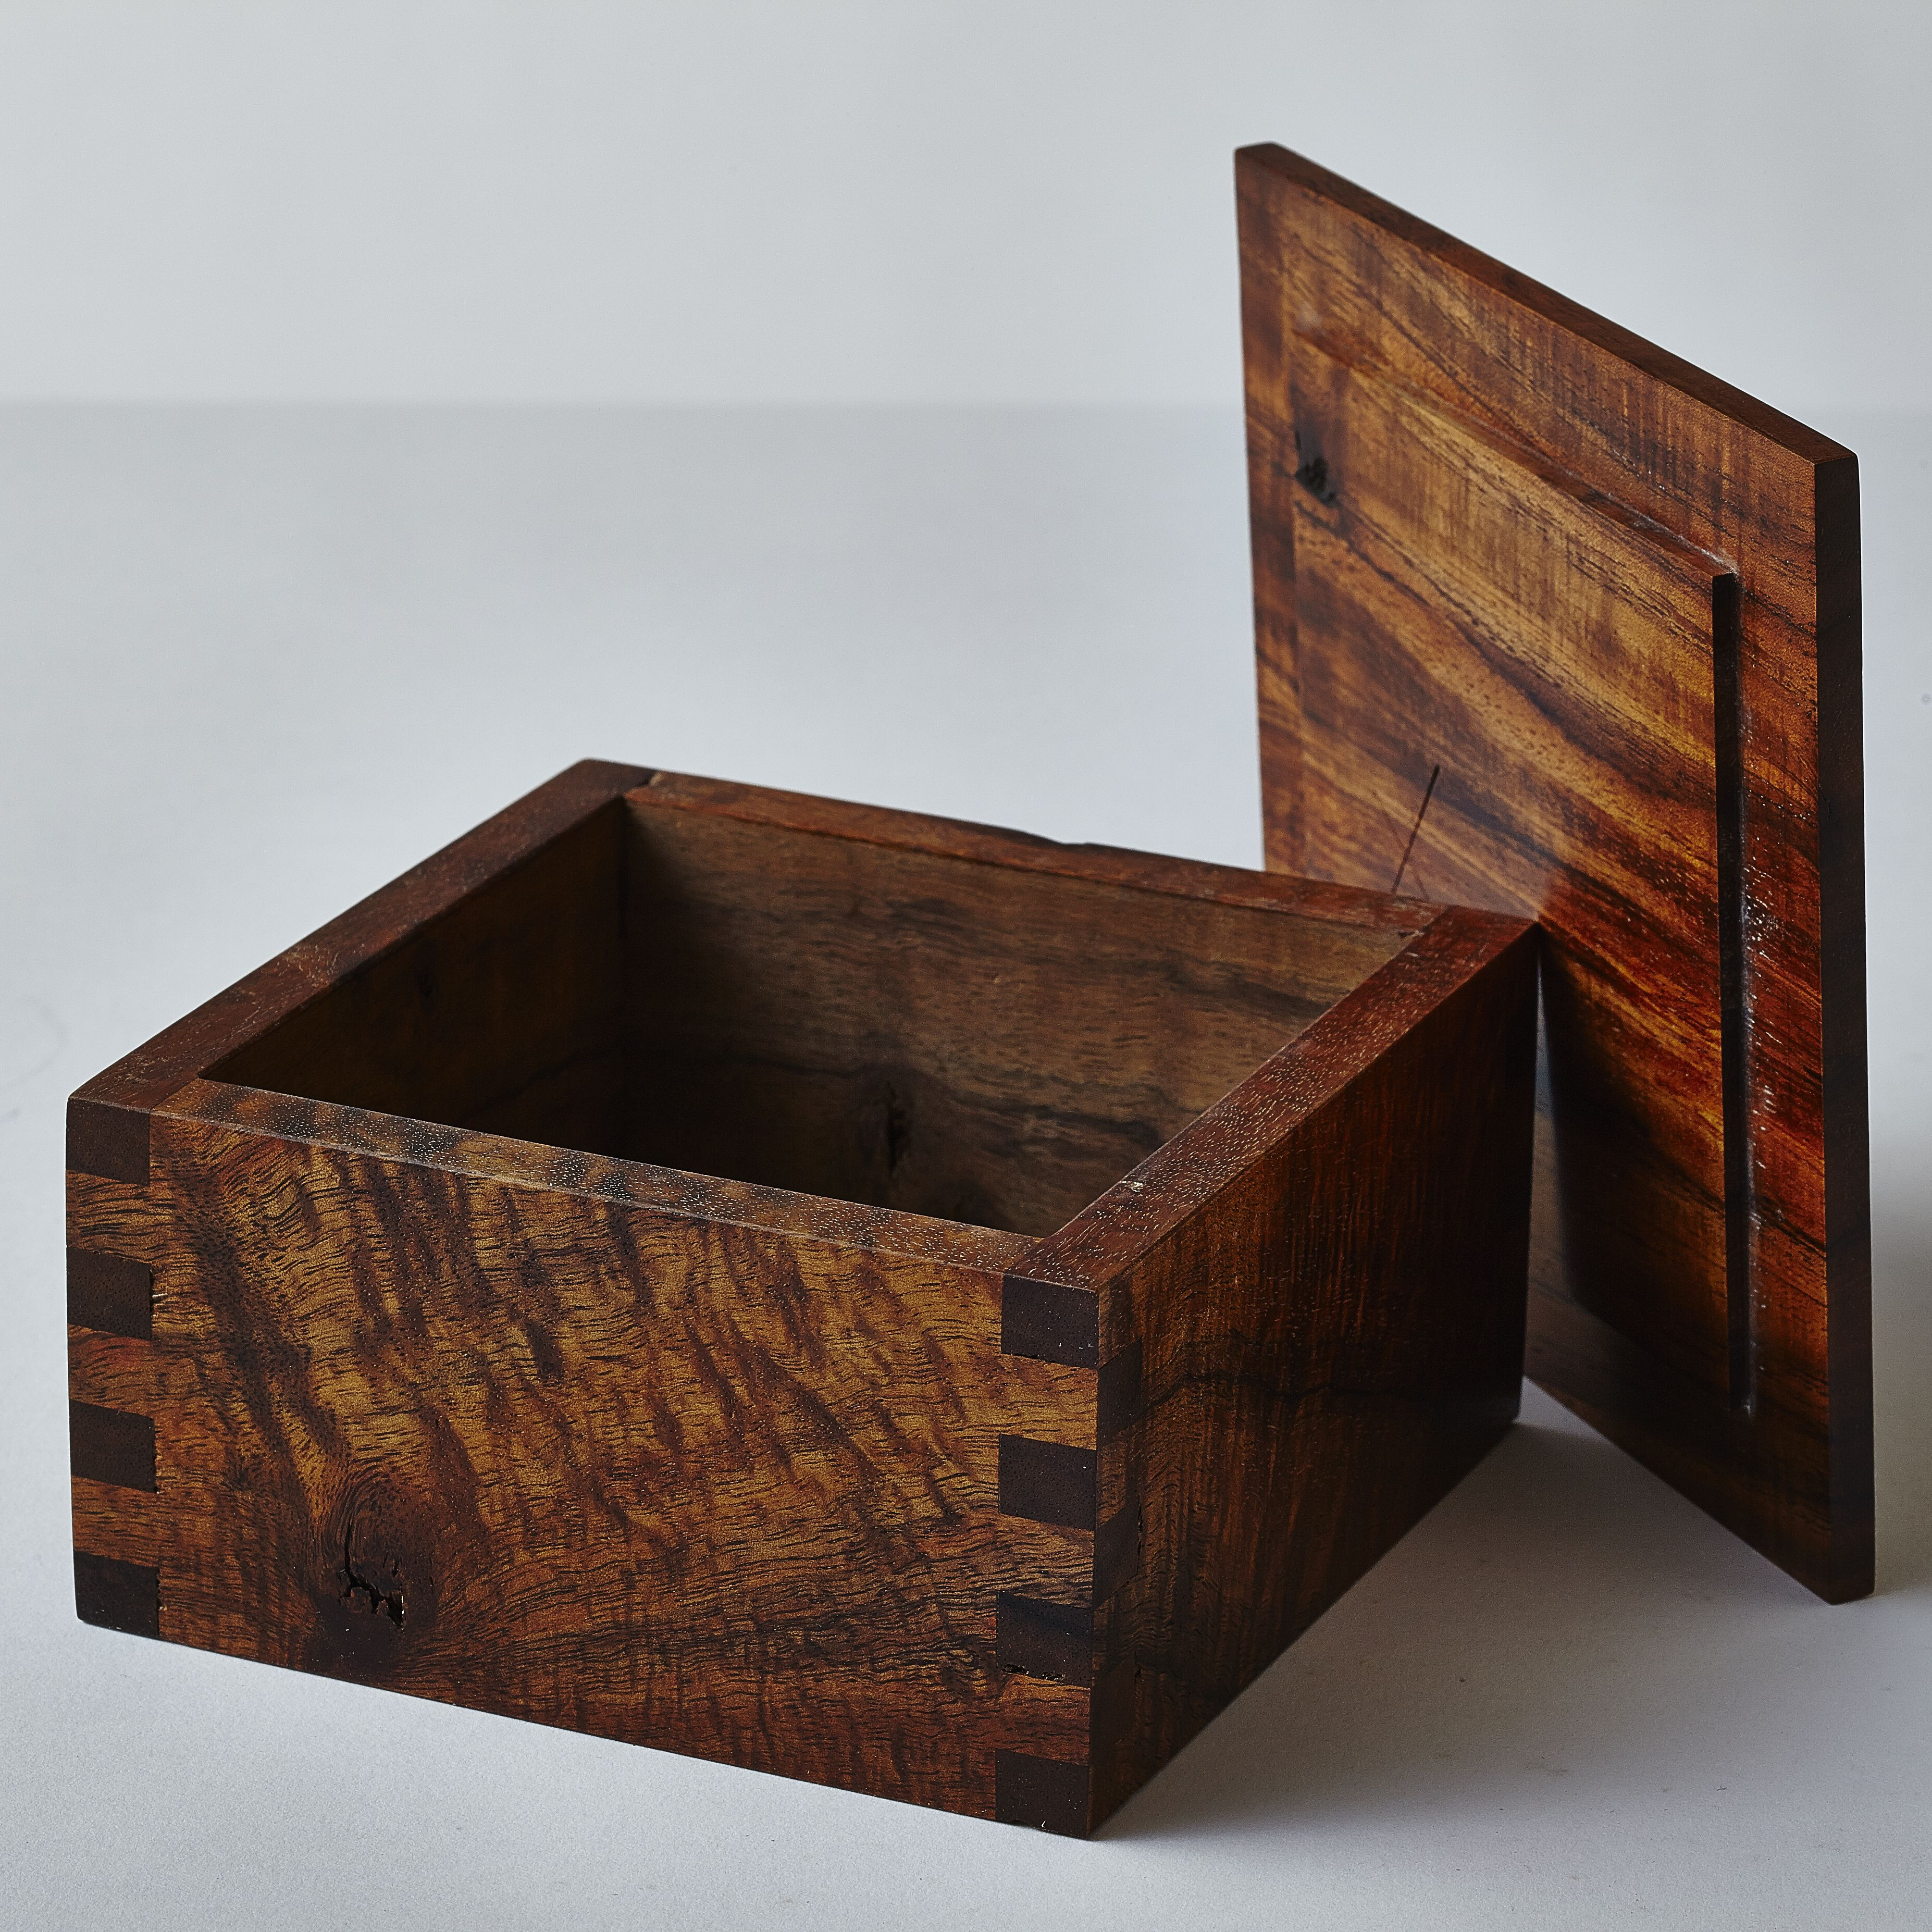 Koa Box With Lid Decorative Boxes Small Wooden Boxes